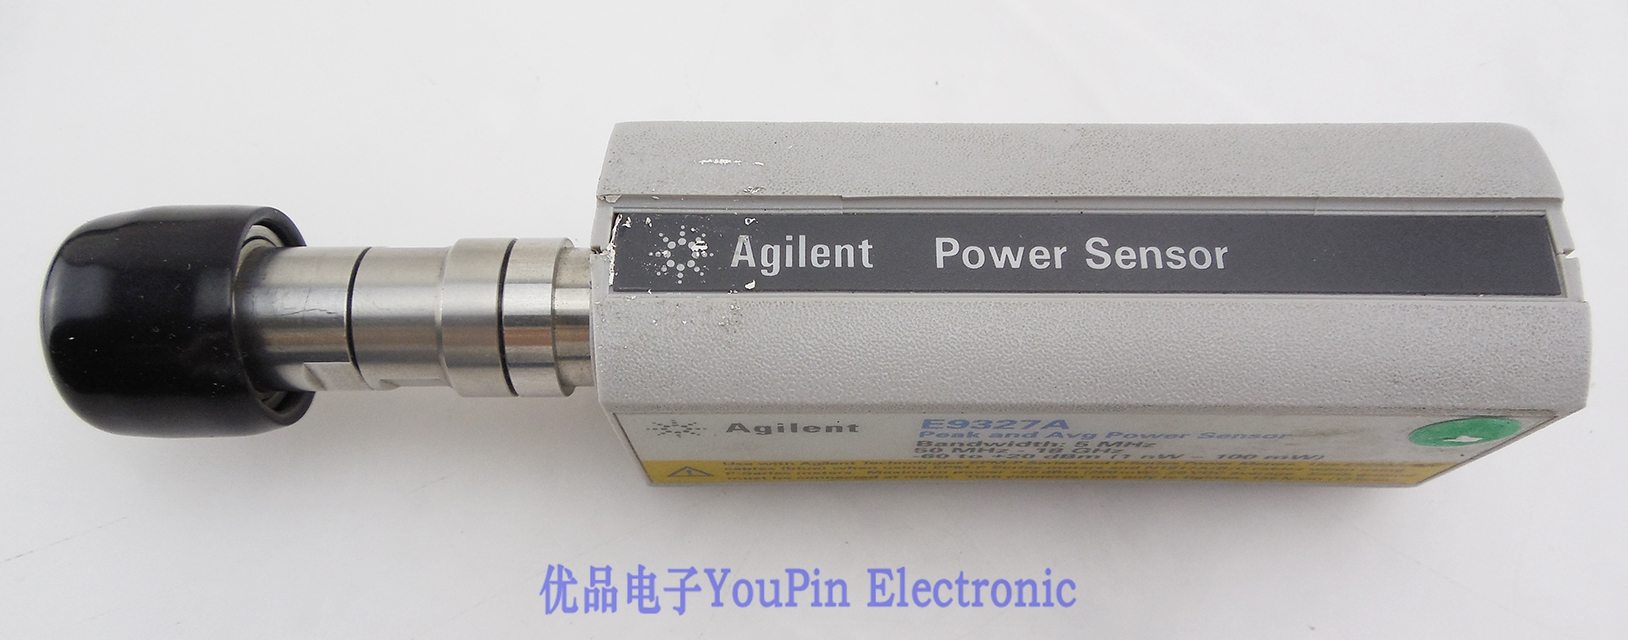 Keysight(Agilent) E9327A E-Series Peak and Average Power Sensor